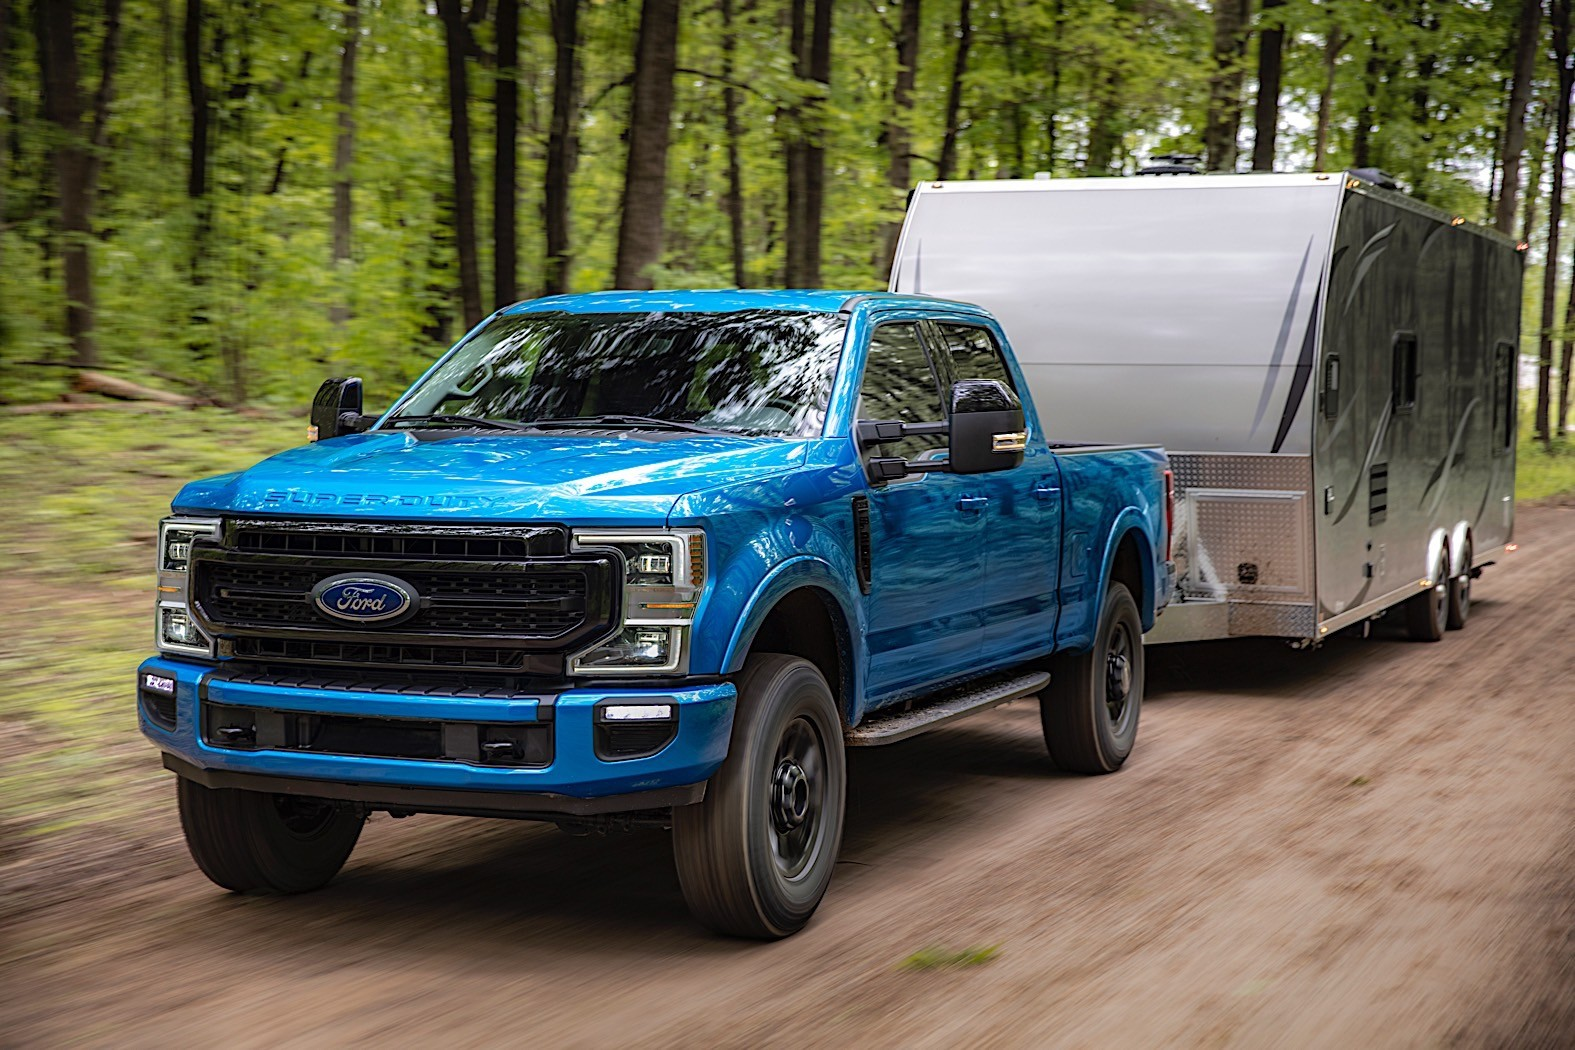 2020 Ford F-Series Super Duty Gets Largest Tires Ever ...